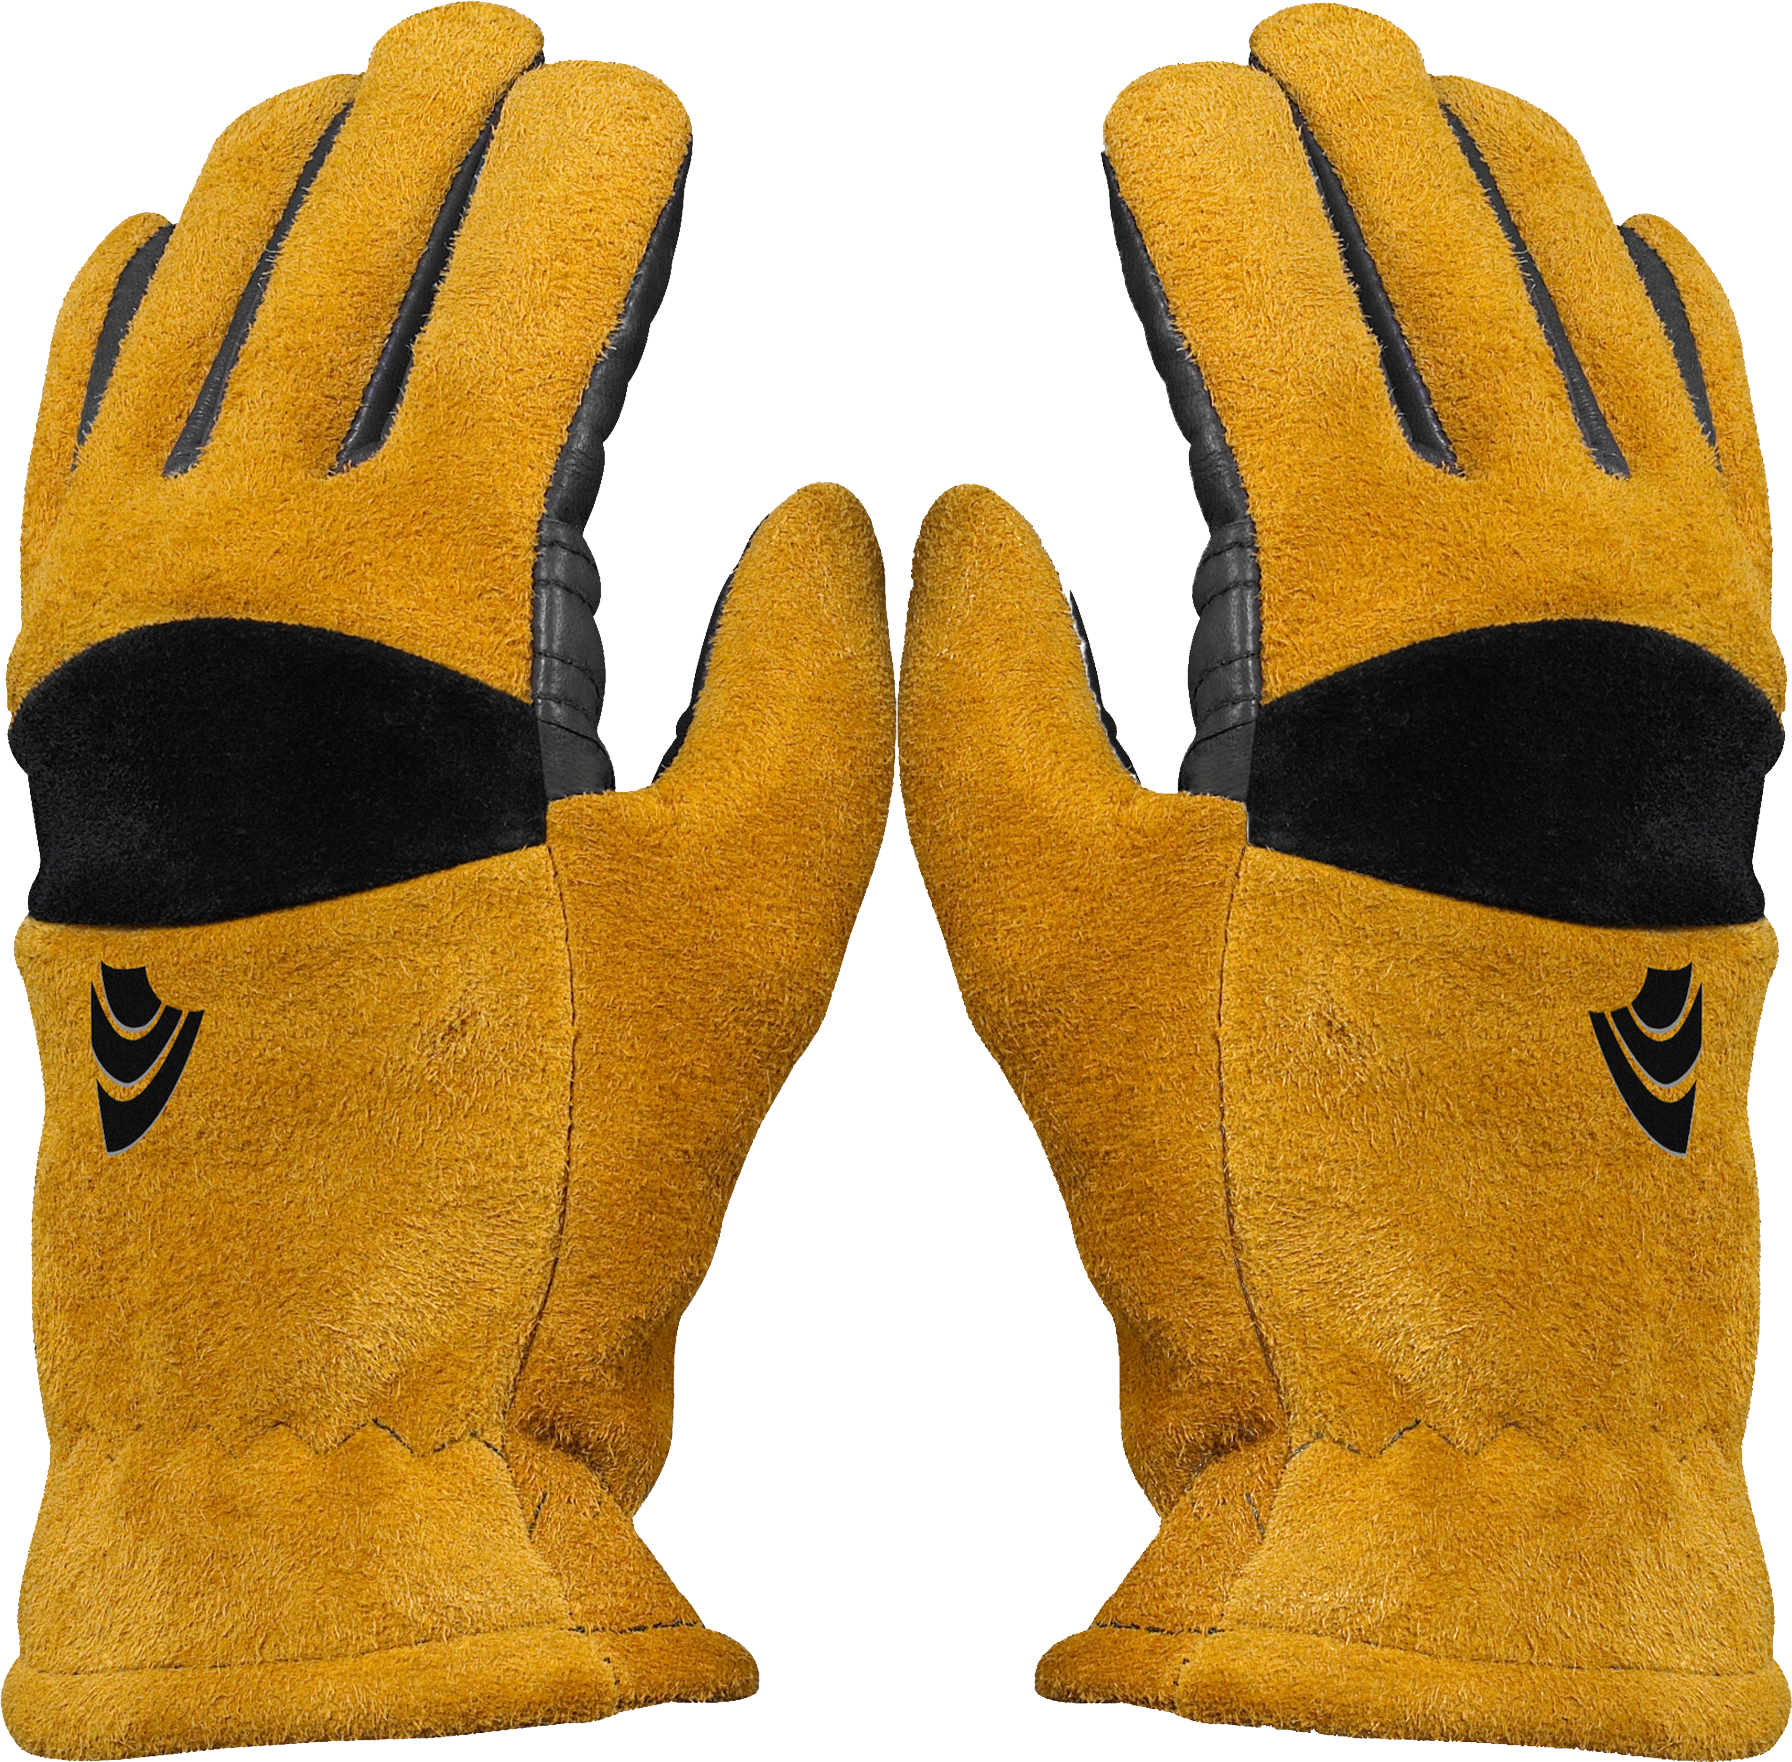 Gloves png images free. Mittens clipart orange